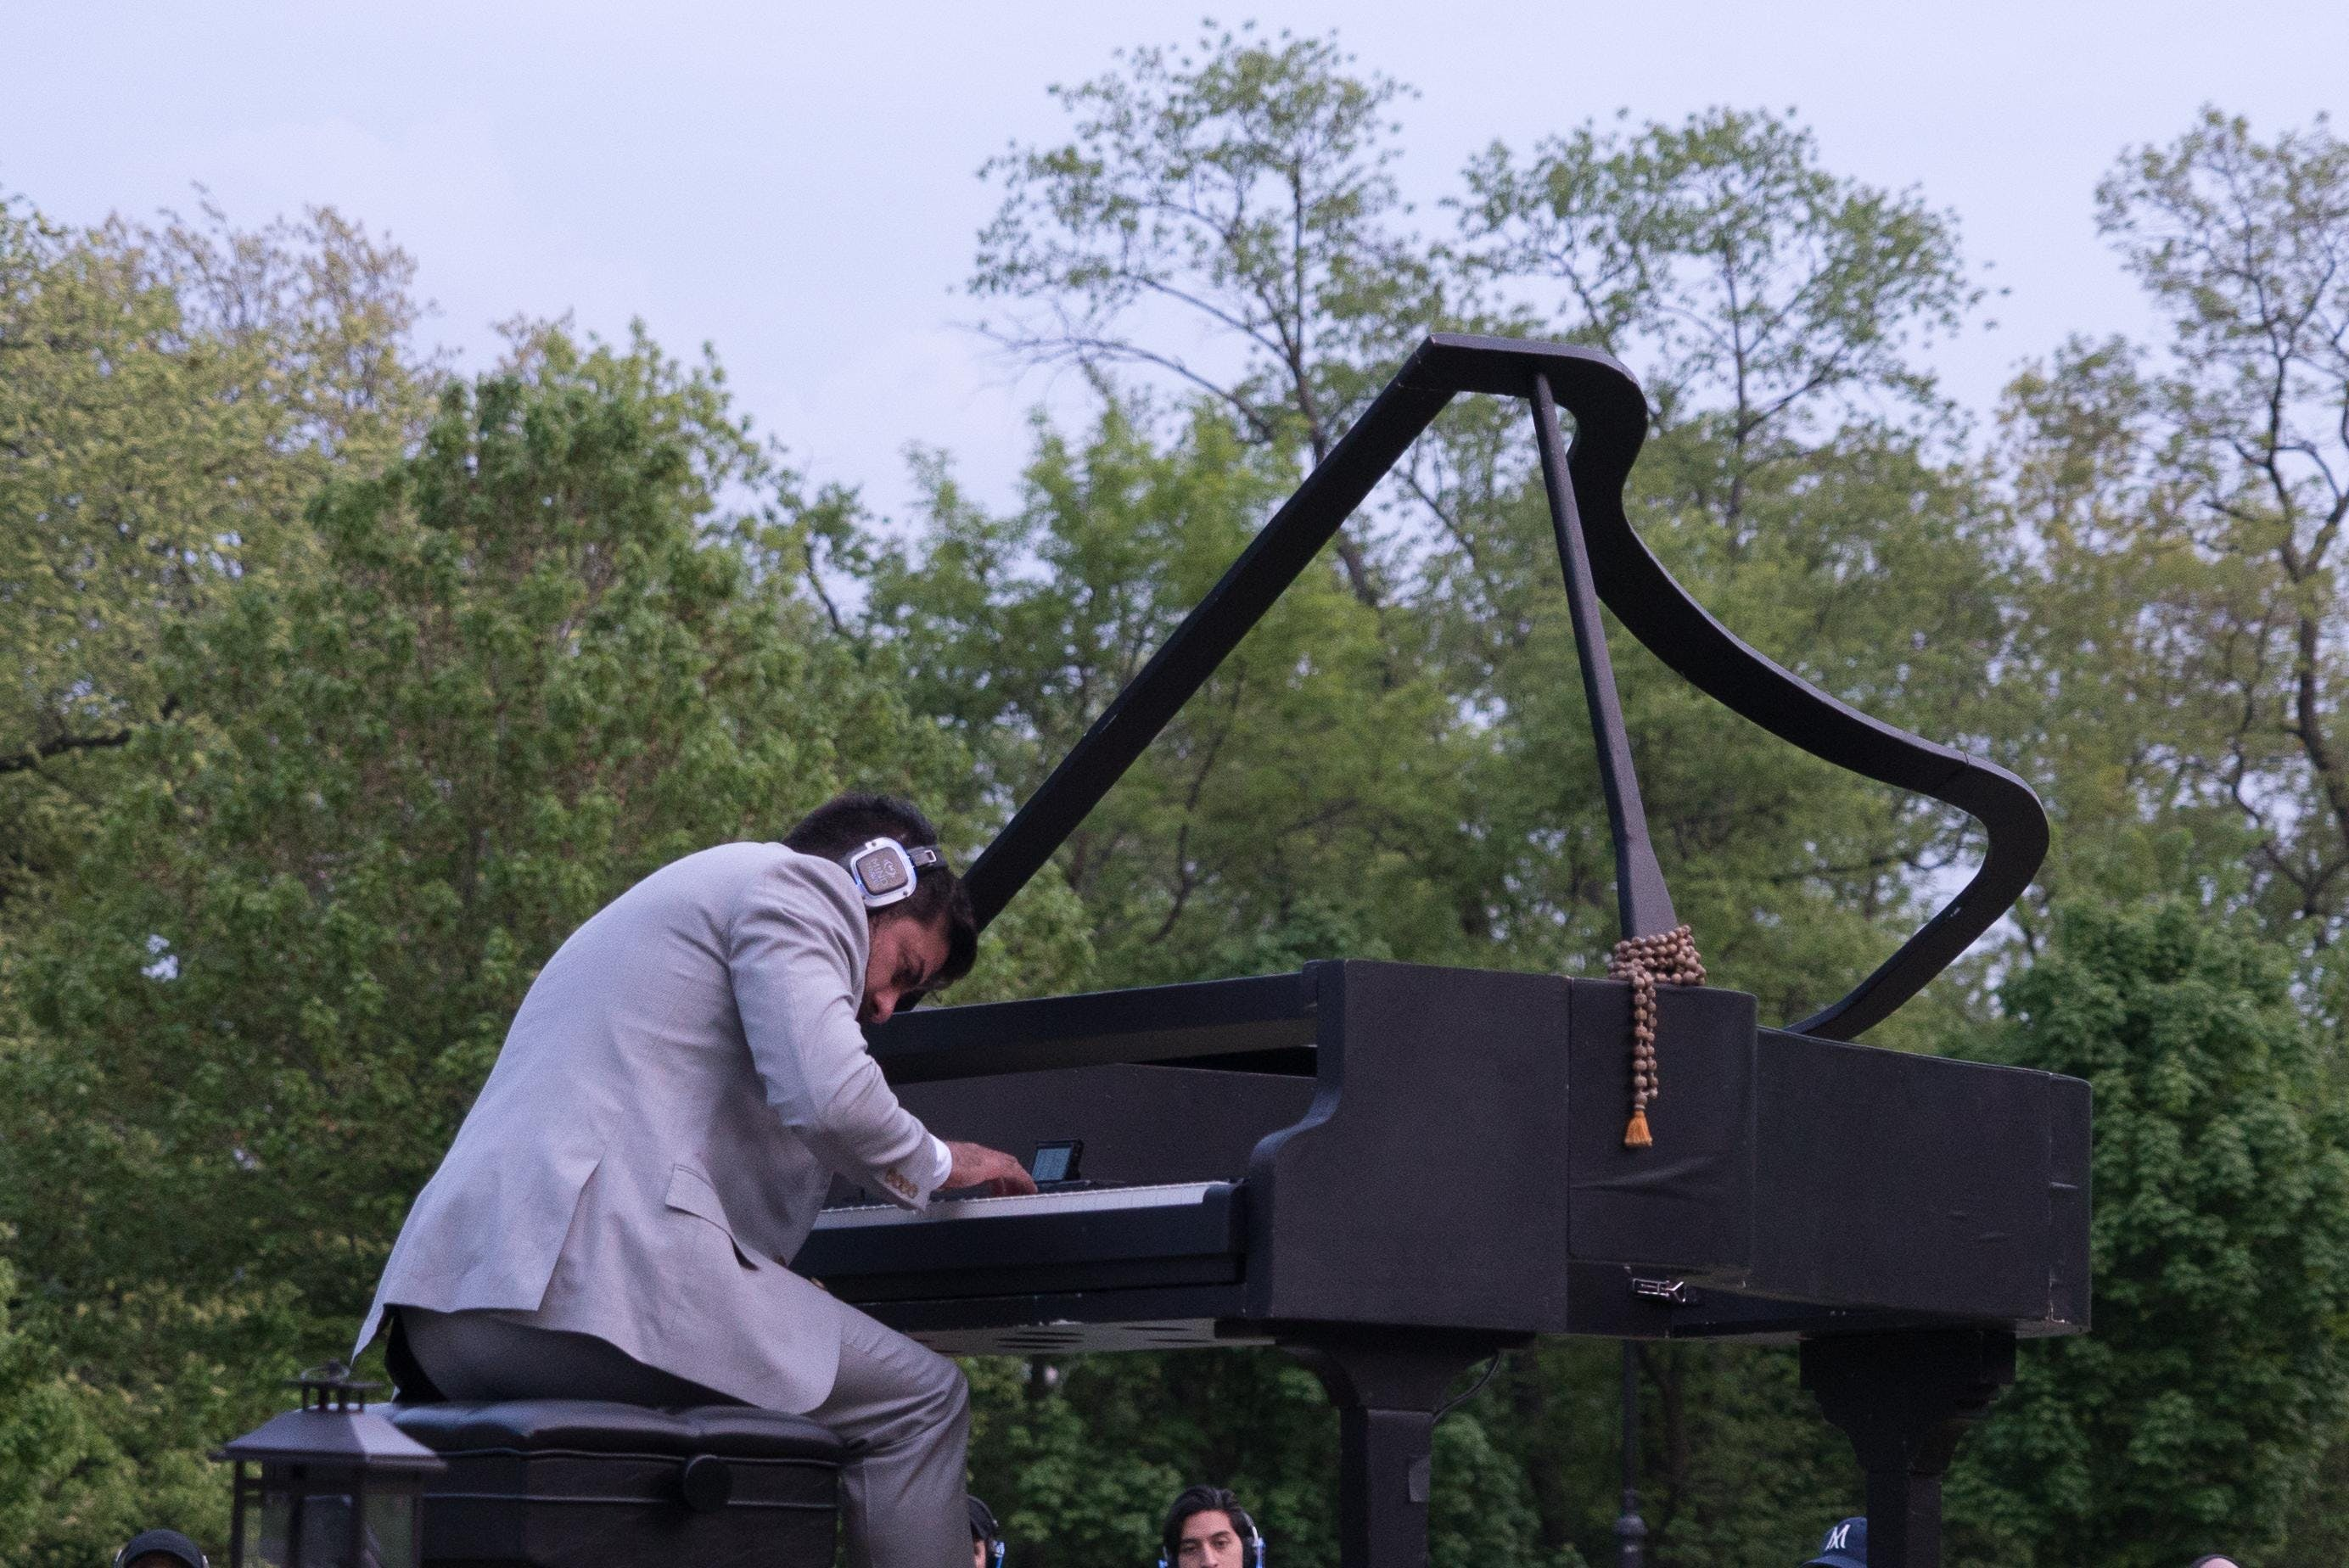 MindTravel in the Heart of NYC: A 'Silent' Piano Concert in Central Park